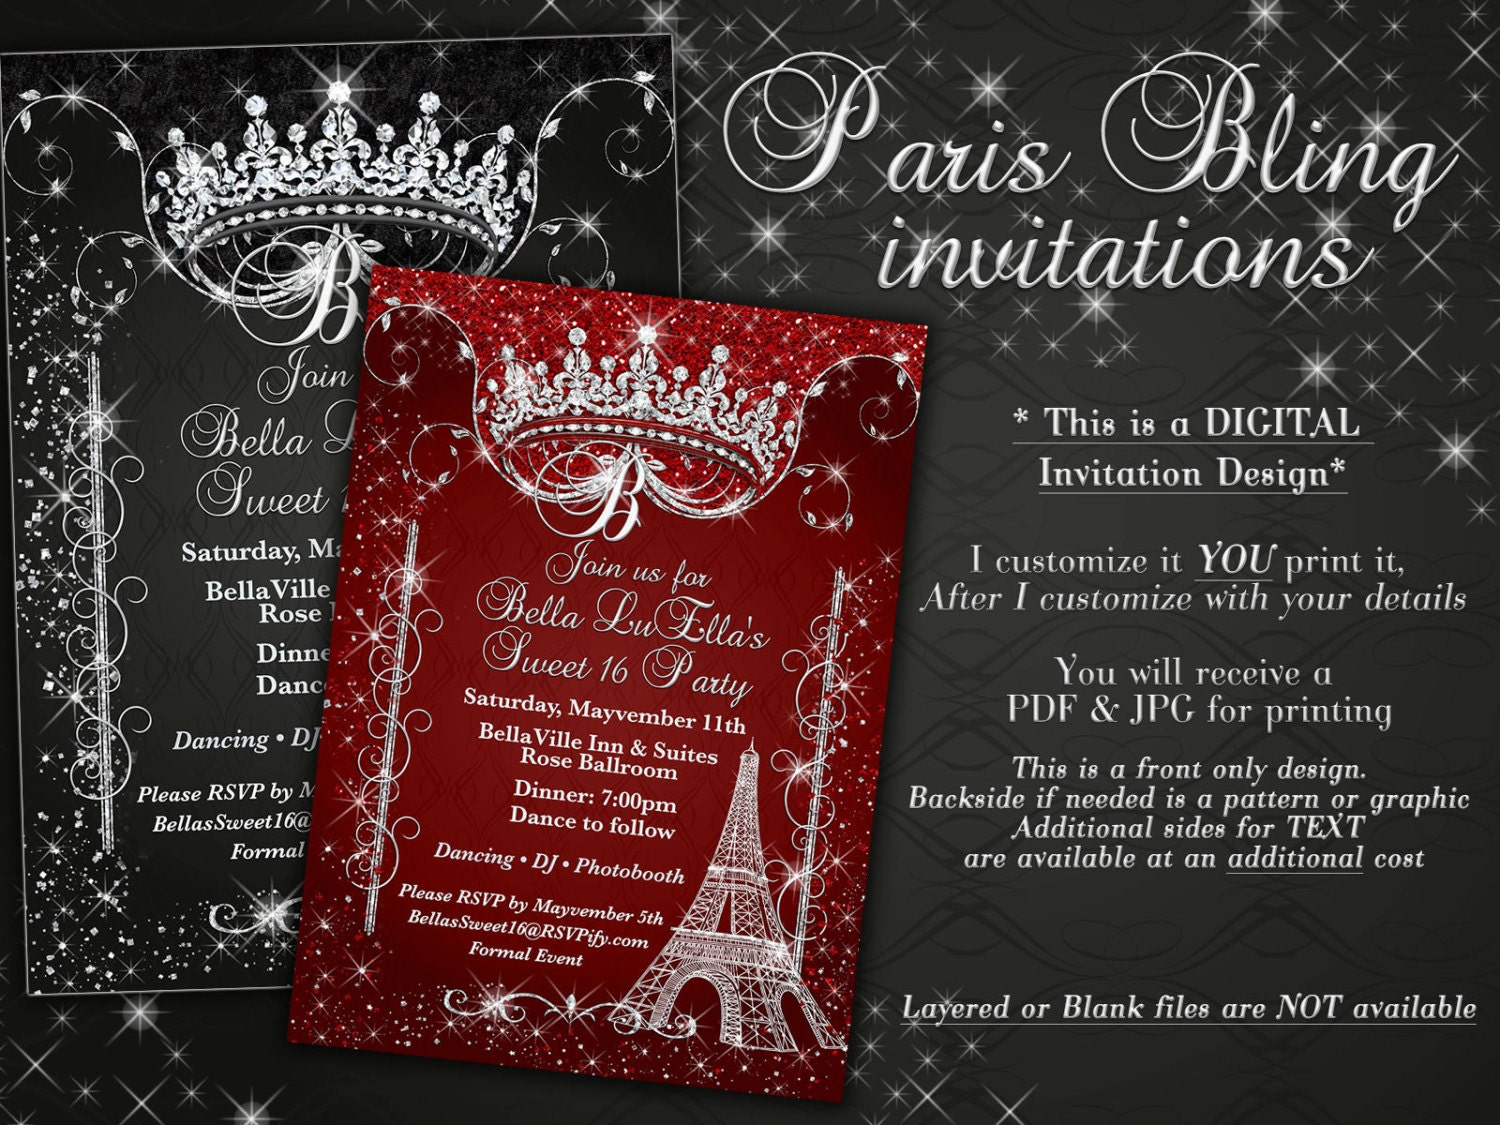 Paris Bling Invitation Sweet 16 Invitation Quinceanera